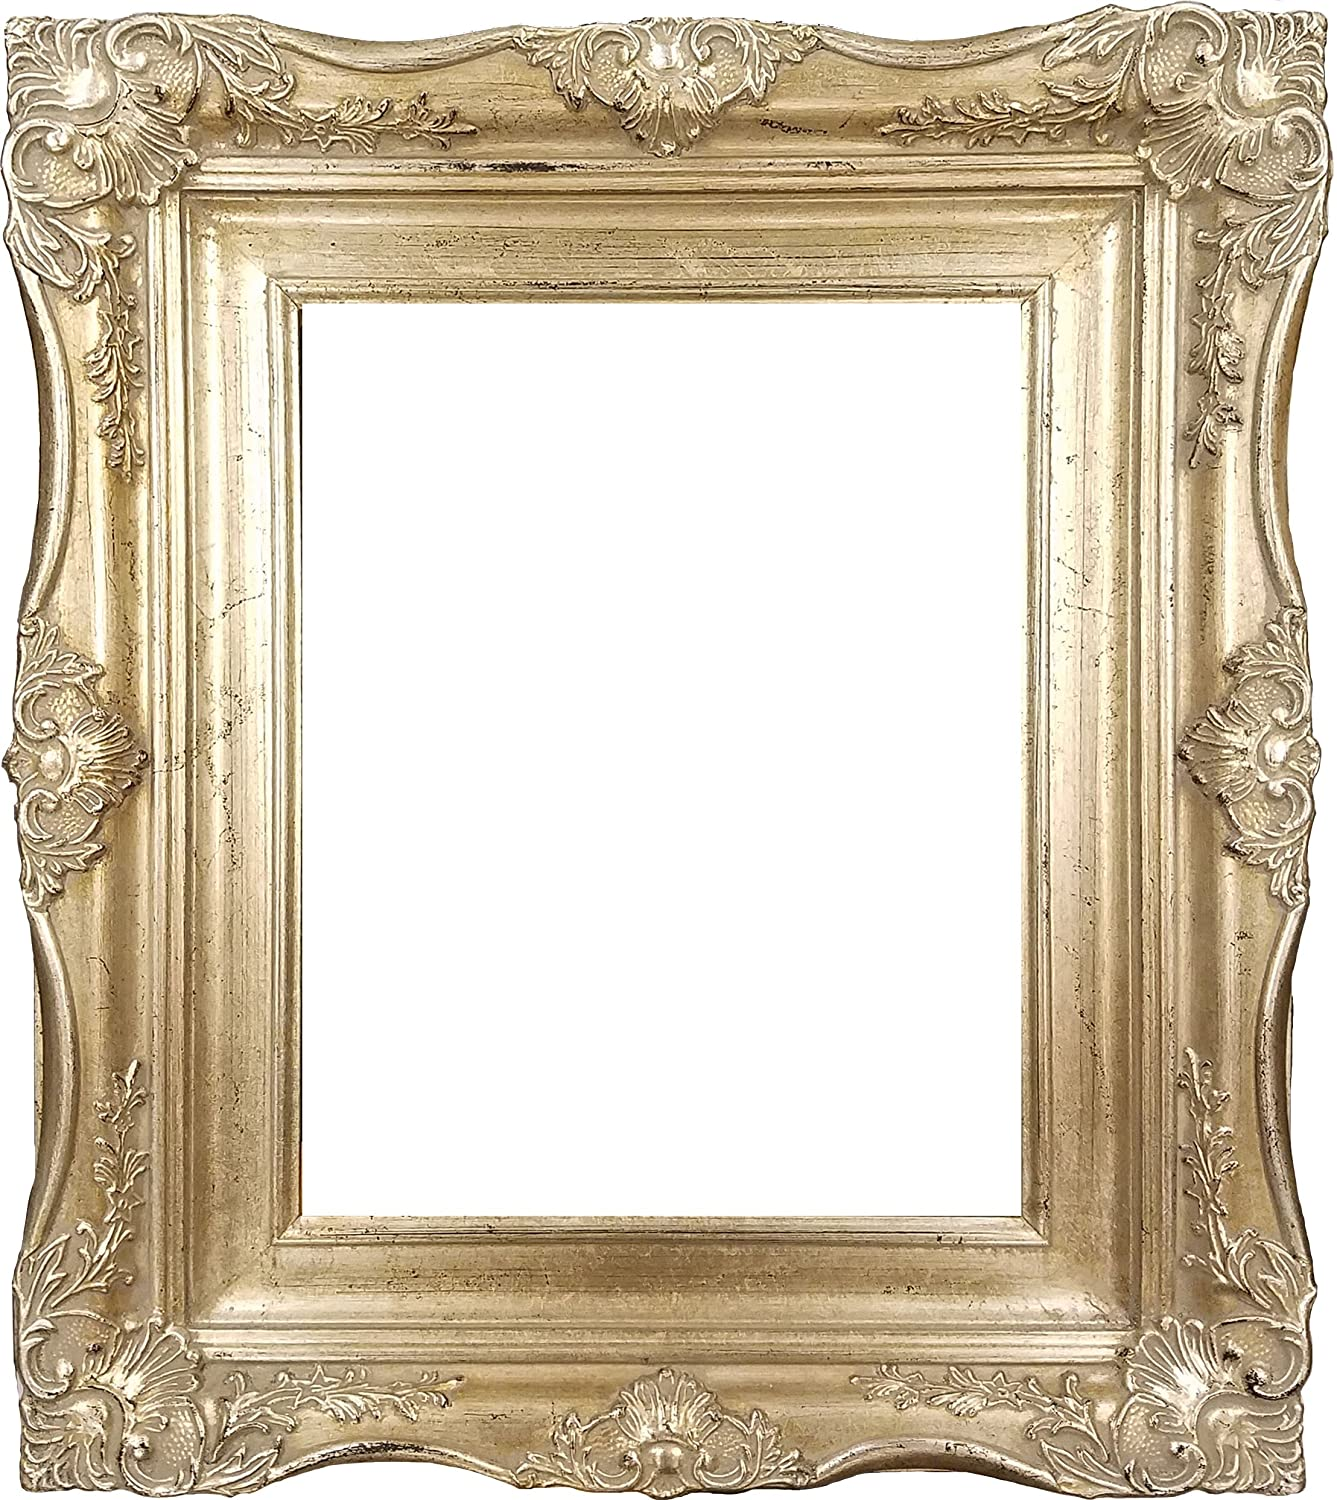 Amazon 4 vintage ornate baroque french silver picture frame amazon 4 vintage ornate baroque french silver picture frame 11x14 inch jeuxipadfo Image collections